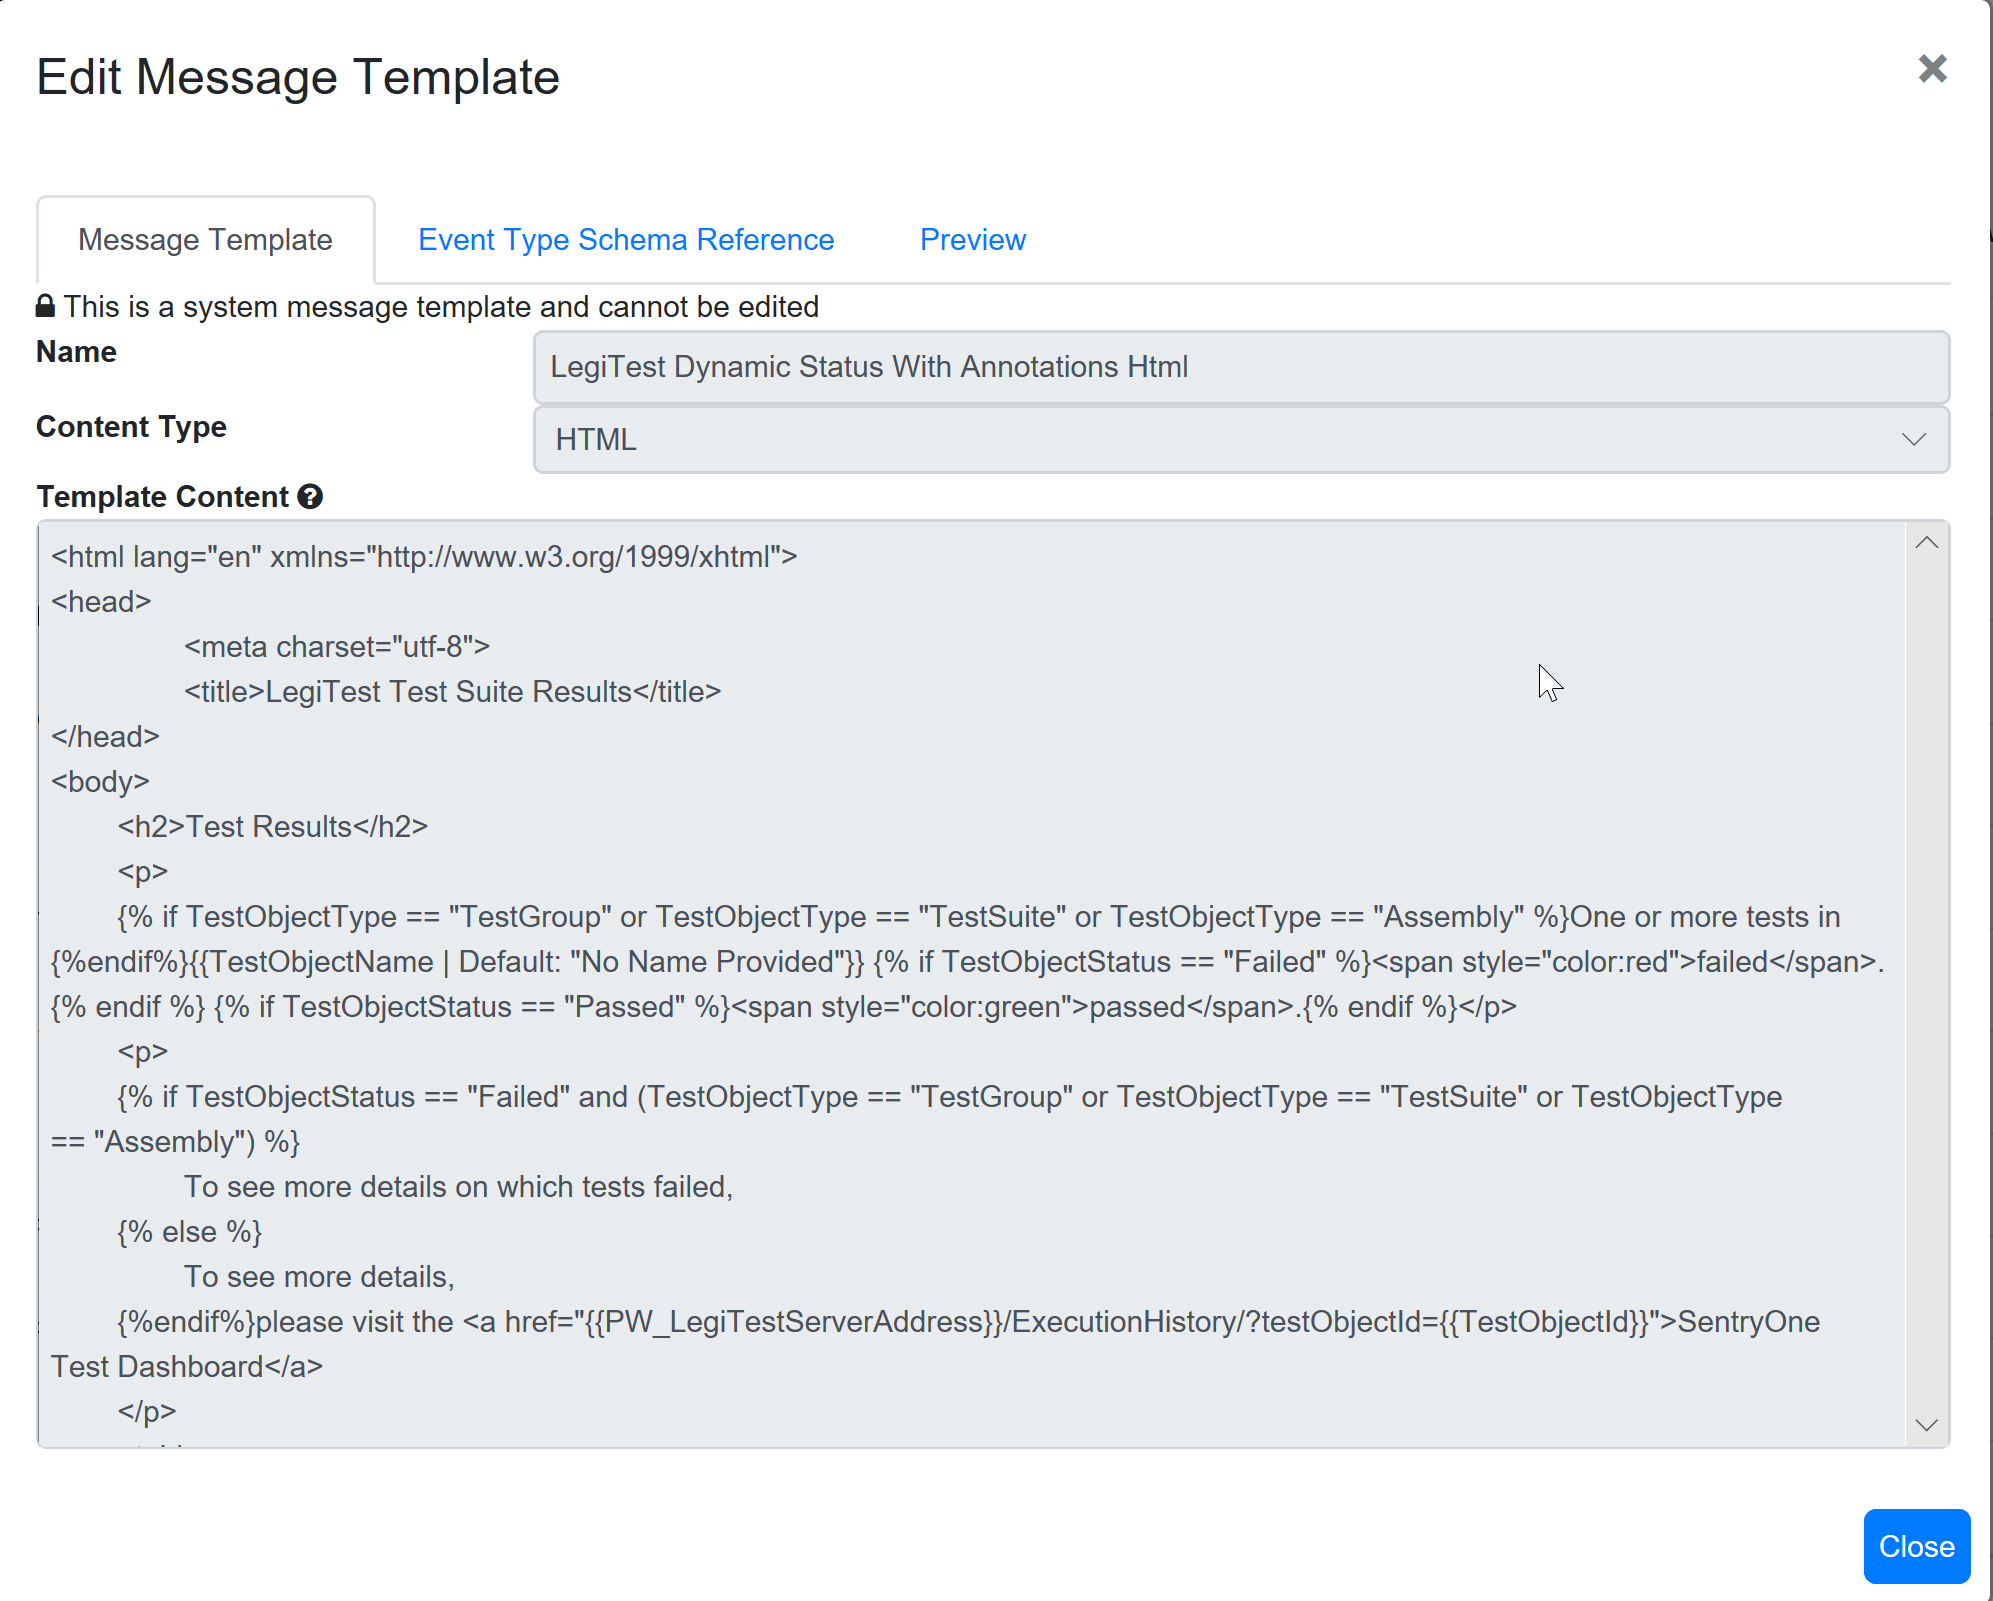 SentryOne Test Edit Message Template view-only